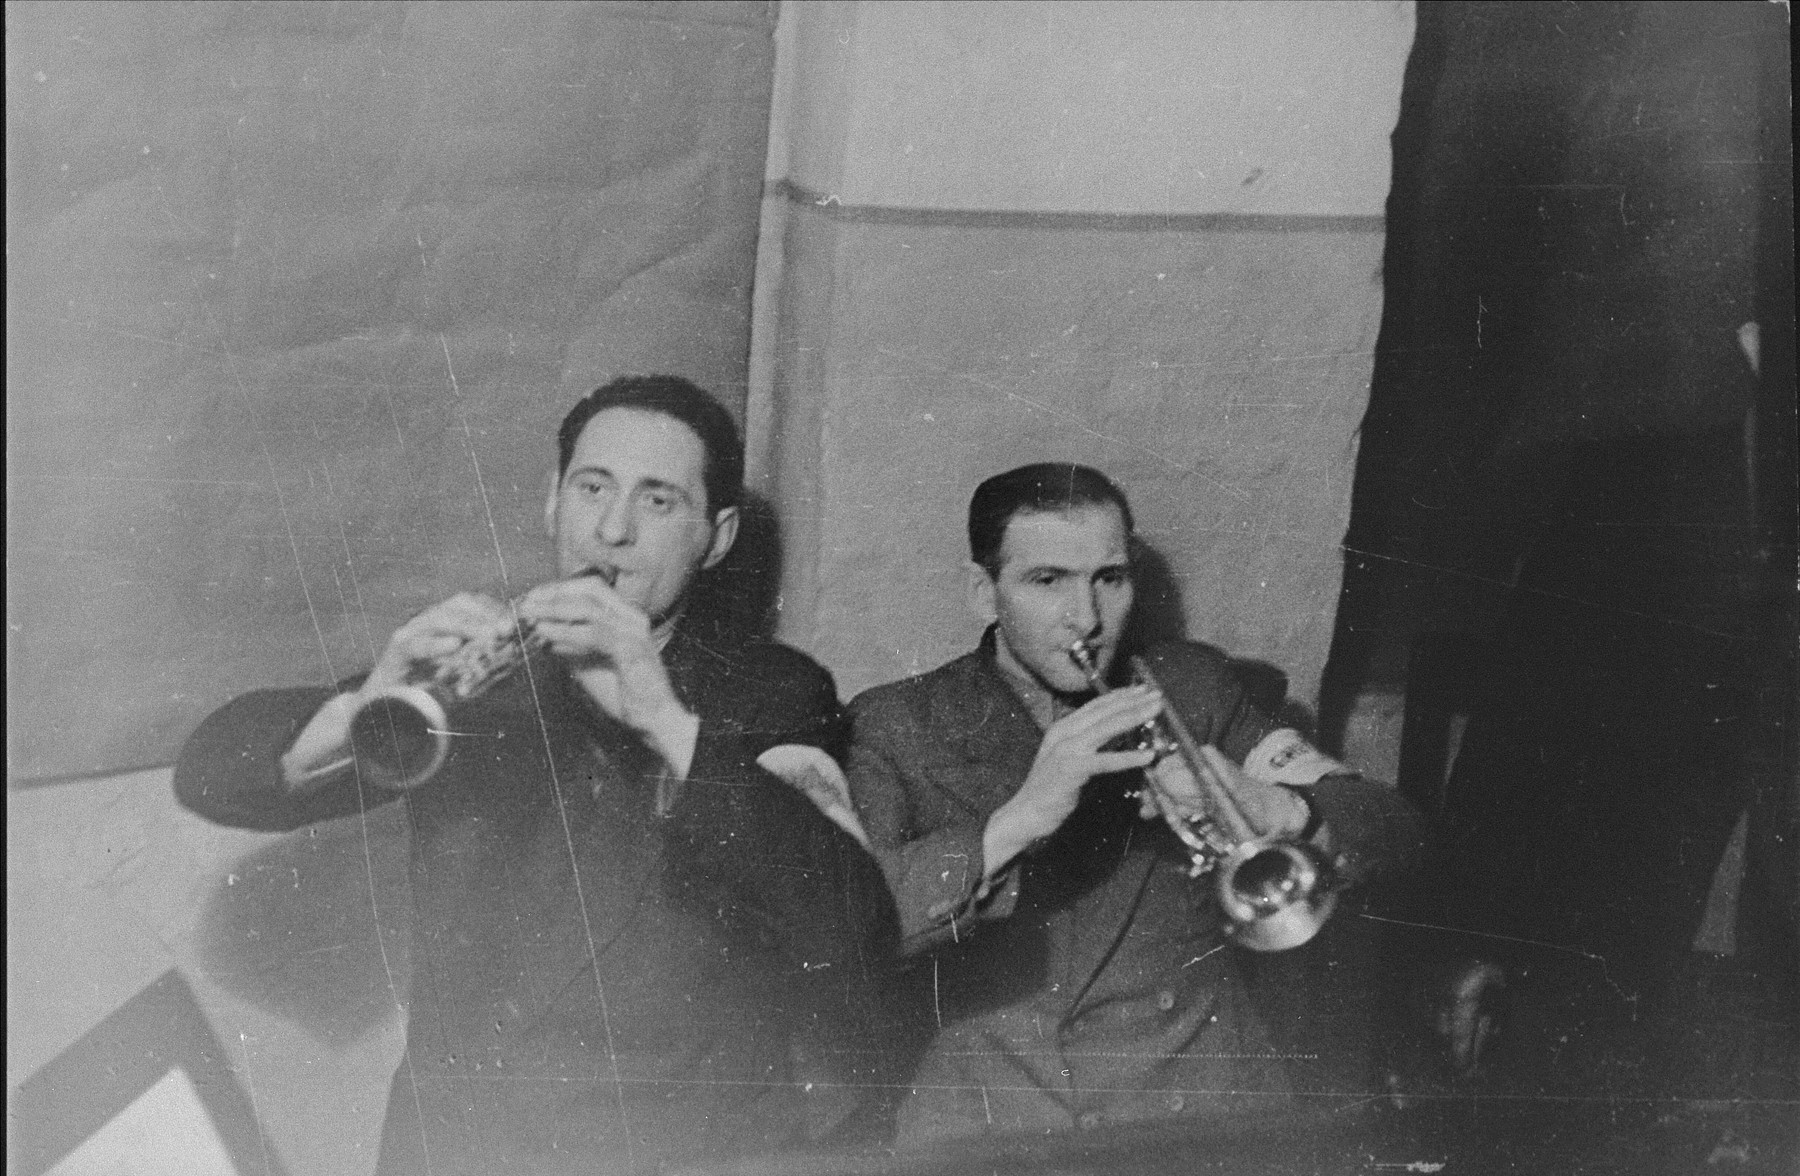 Performance by two members of the Kovno ghetto orchestra.  Pictured are Yerachmiel Wolfberg and Yitzhak Borstein.